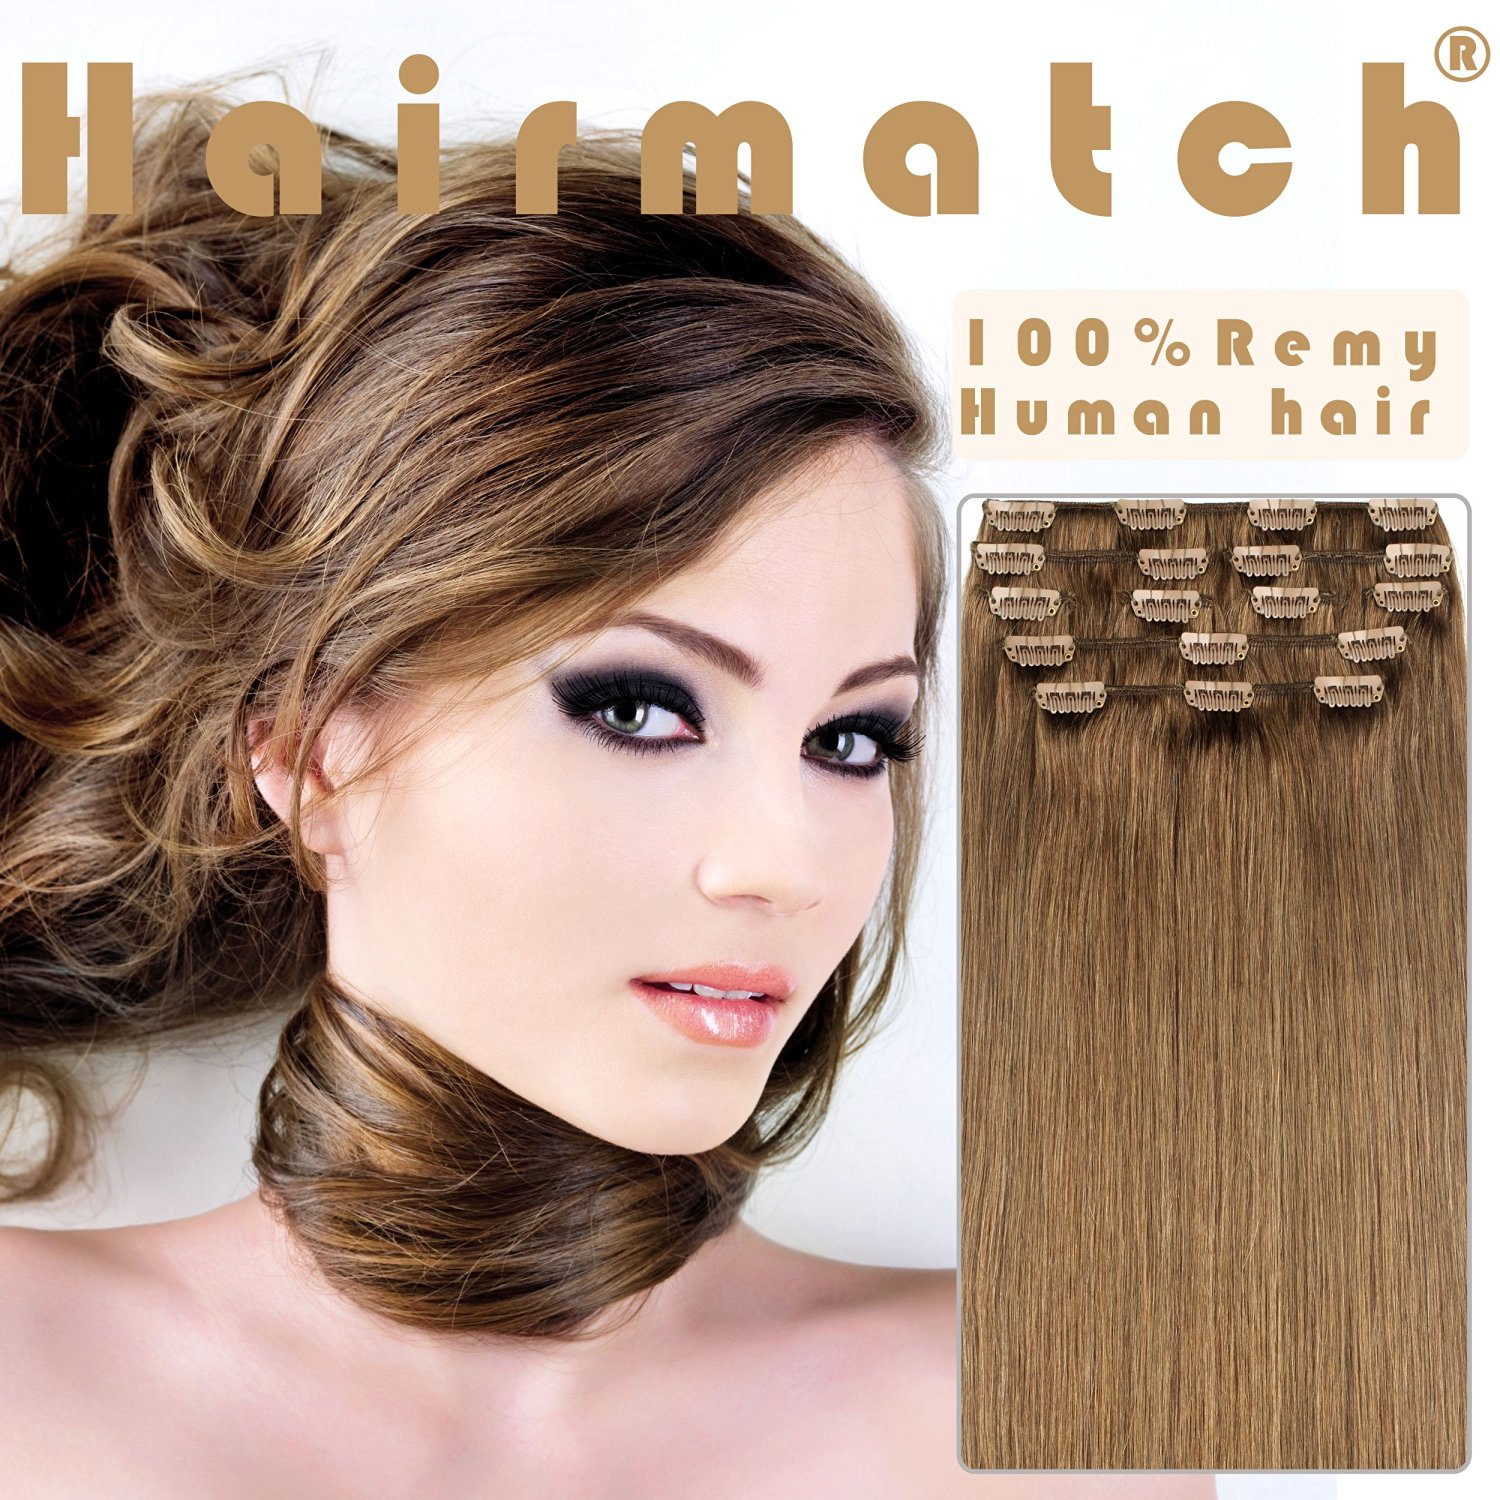 "Hairmatch® 100% Remy Human Hair Extension Clip in Extensions 9 Pieces 16""-22"" 8 Colors 125g (20""-22"" 9pcs 125g, Chestnut Brown 6)"